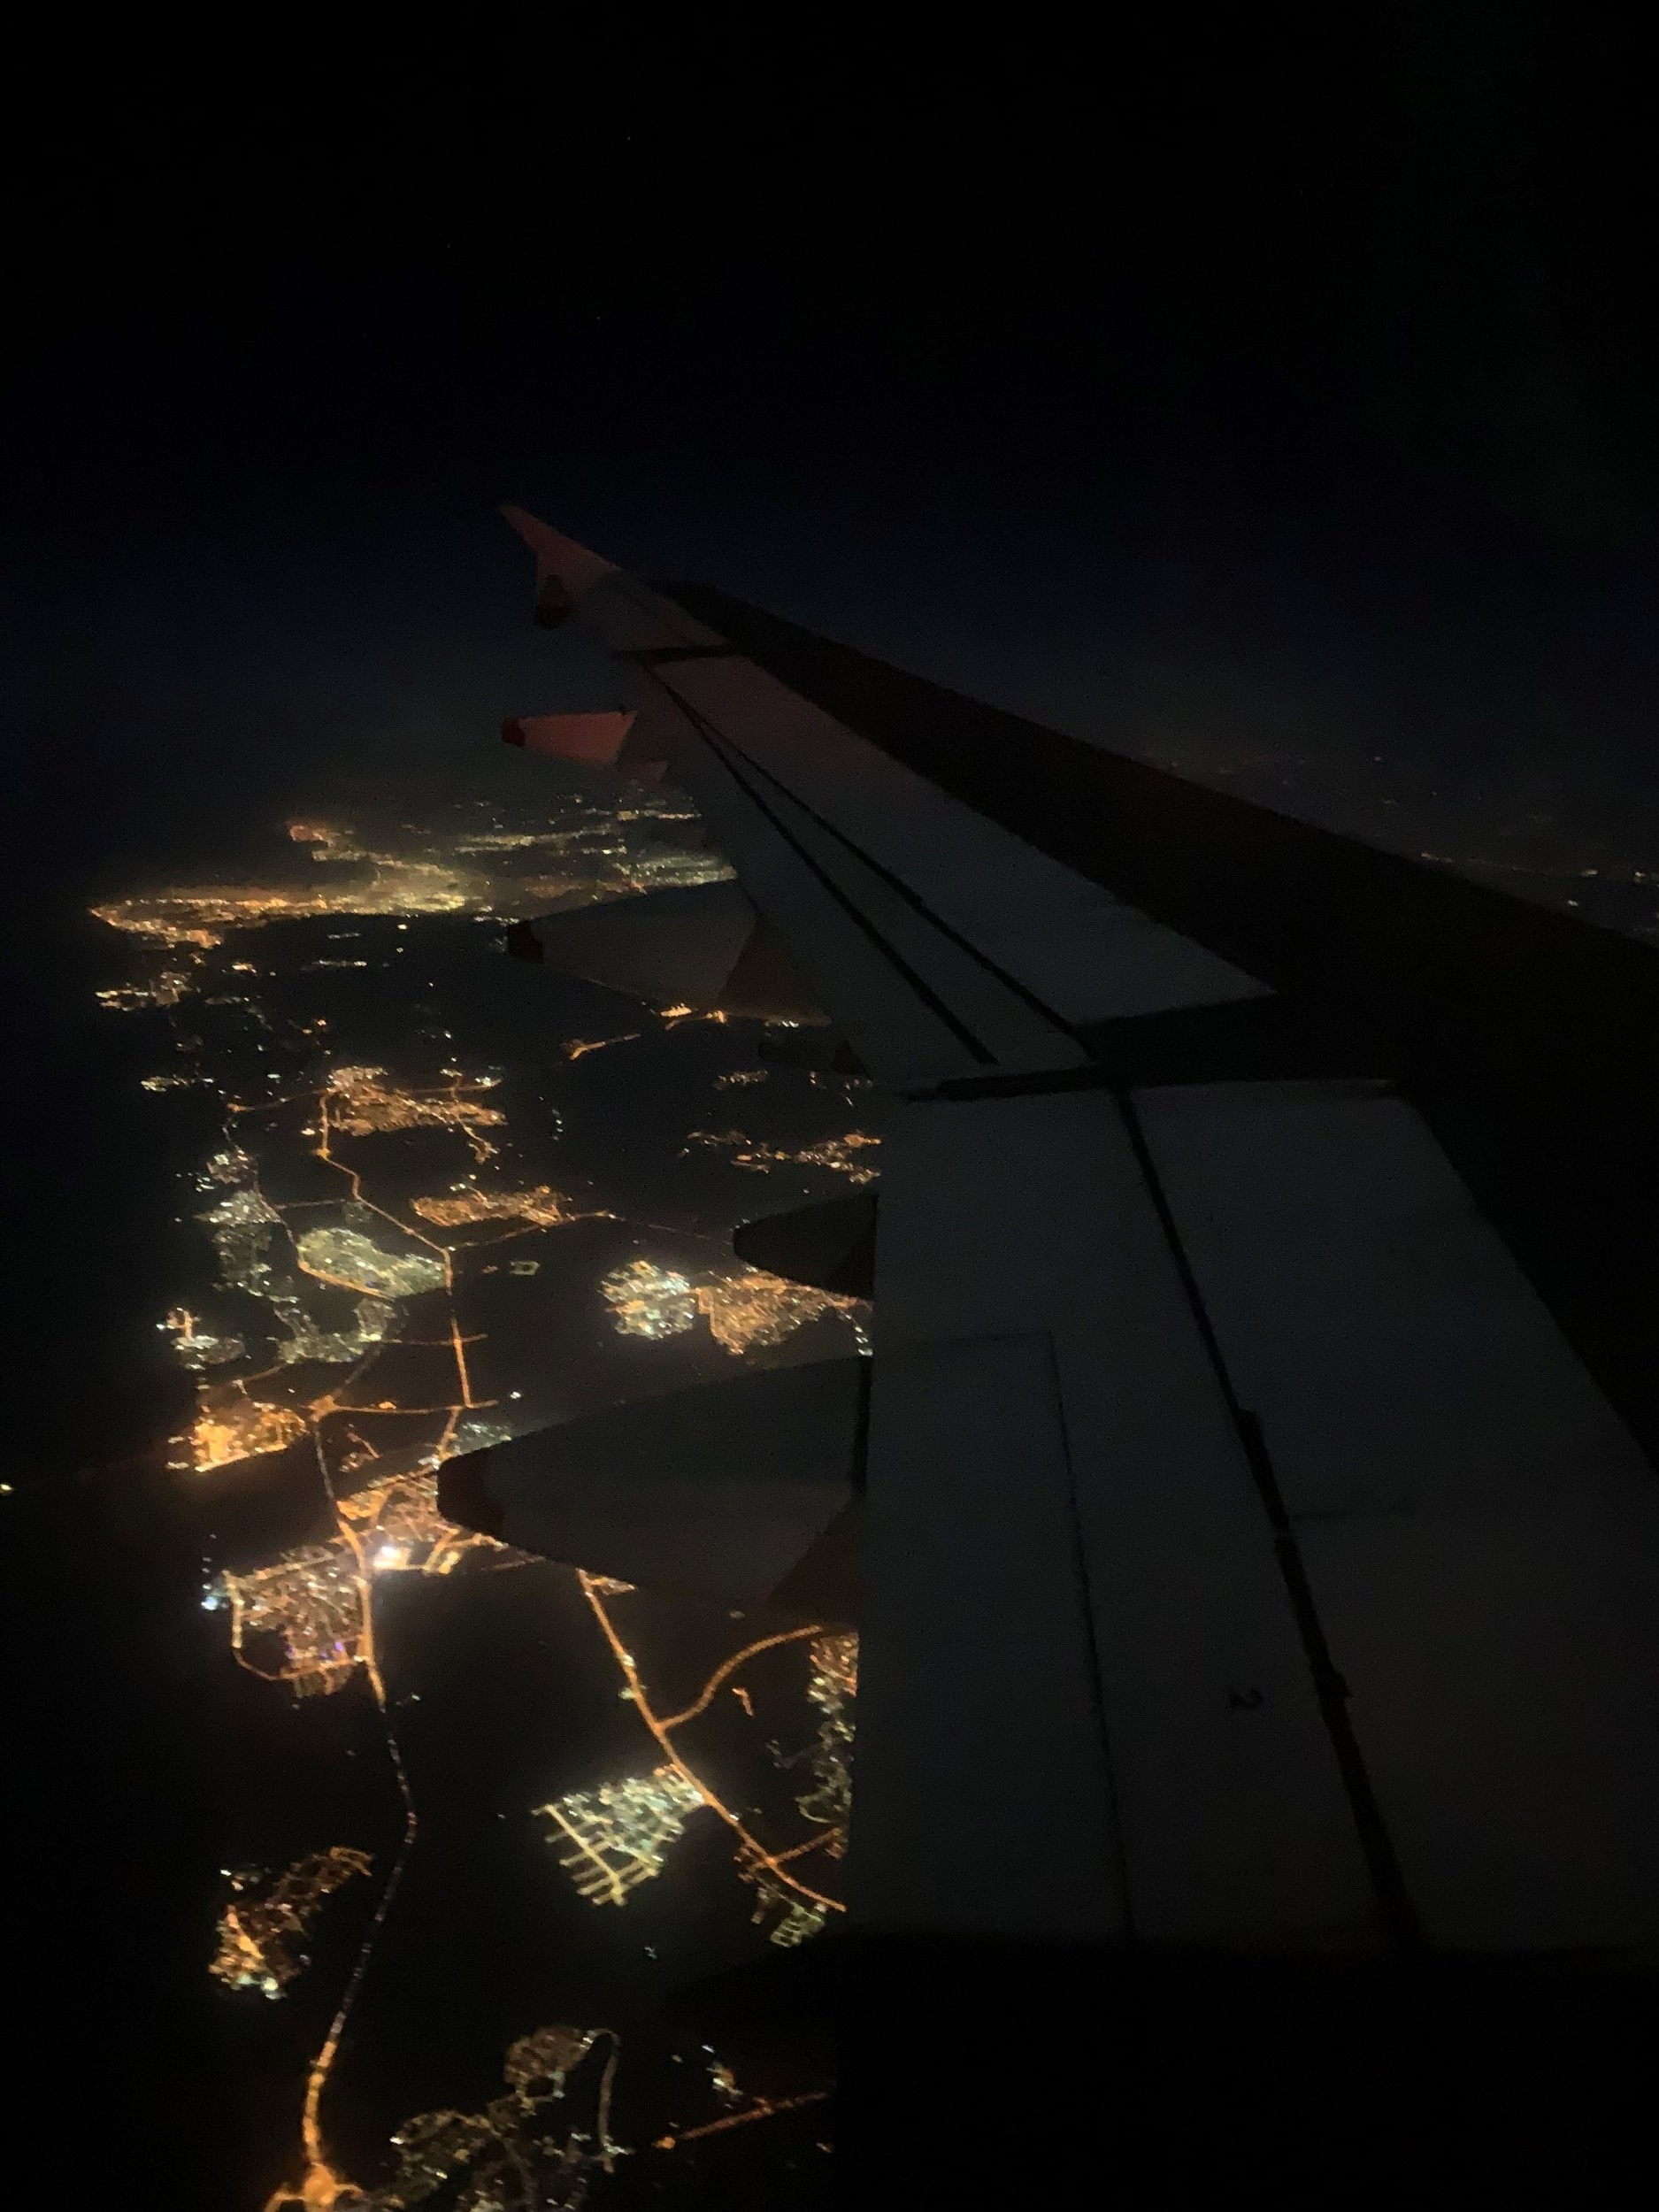 Flying was new to me on this trip. I sure hope I forget the stomach jolts and roller-coaster butterflies, but I know I will never forget the view above Amman. Photo credit: Russo, 2019